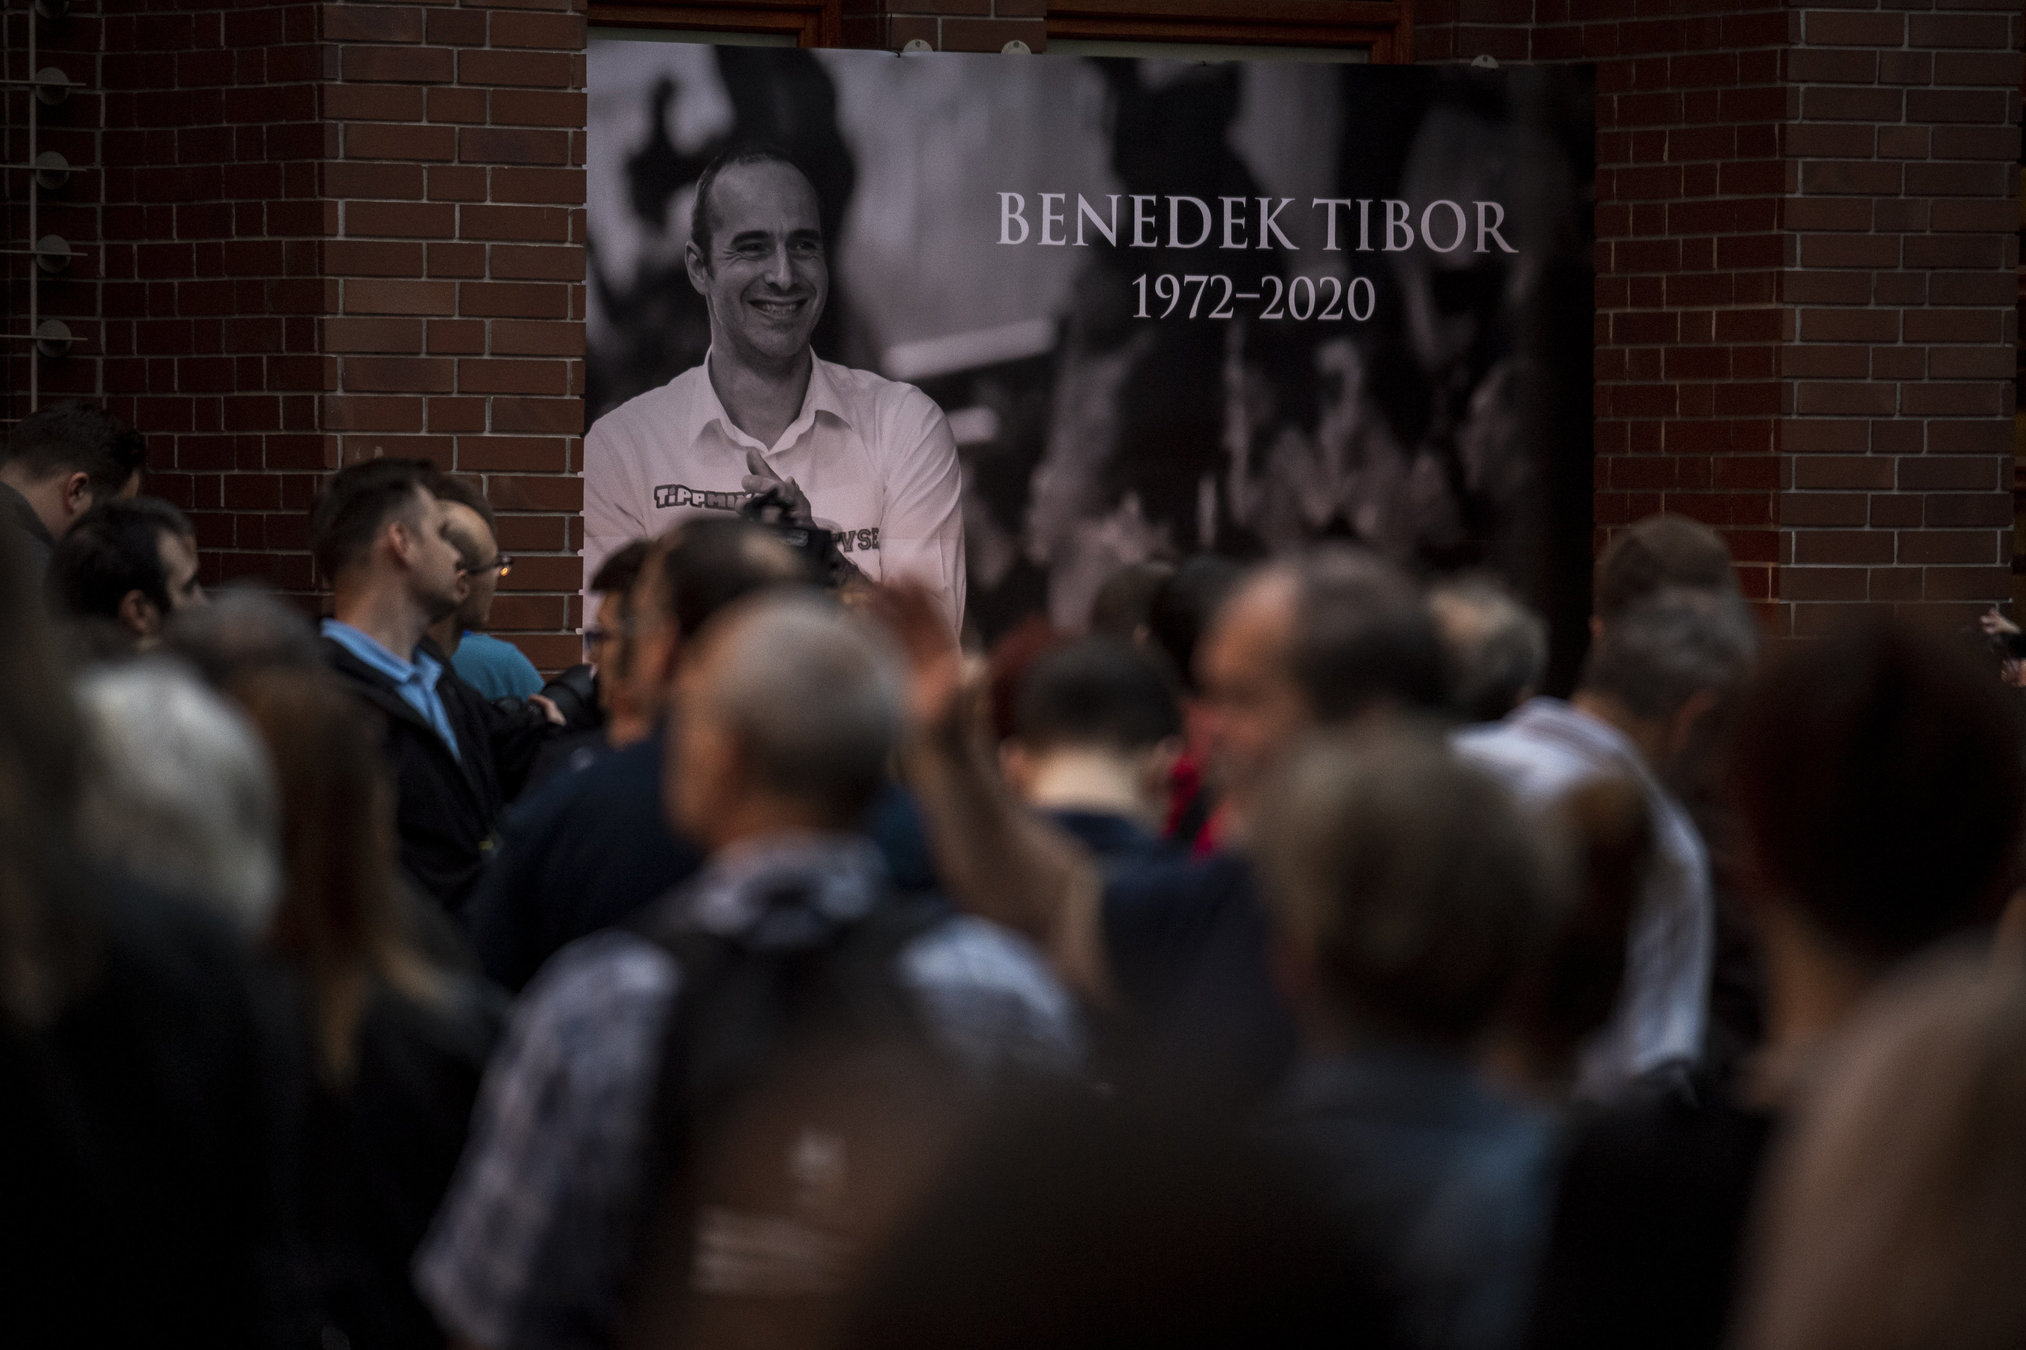 benedek commemoration